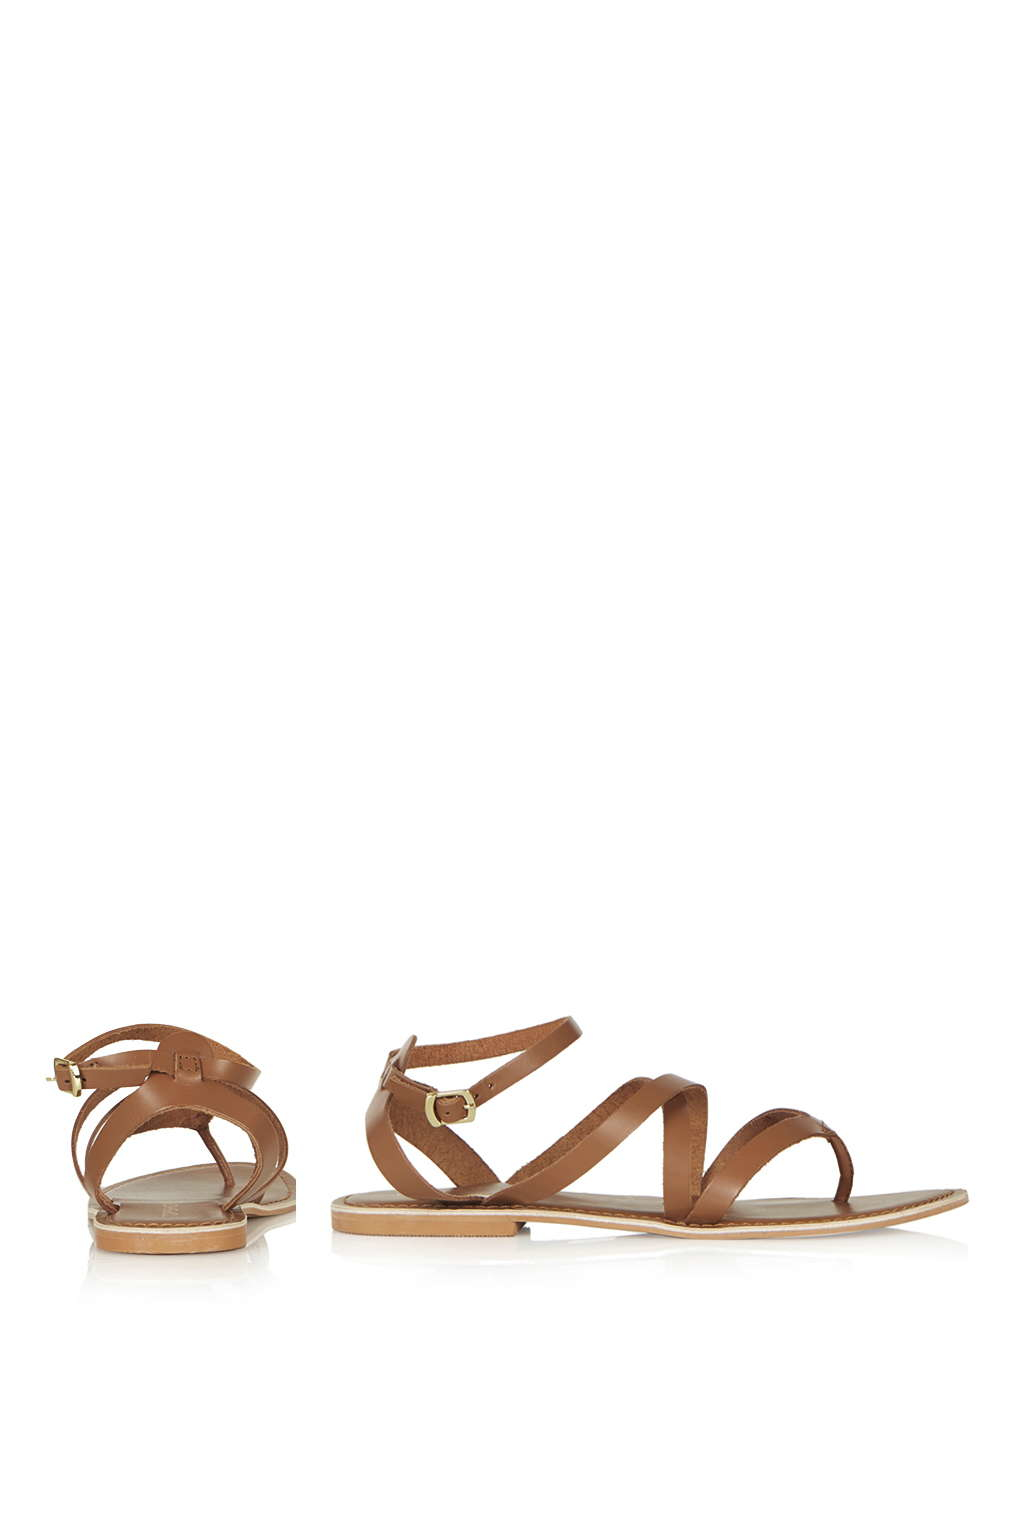 6f7f8ad64d249 Lyst - TOPSHOP Hercules Strappy Leather Sandals in Brown